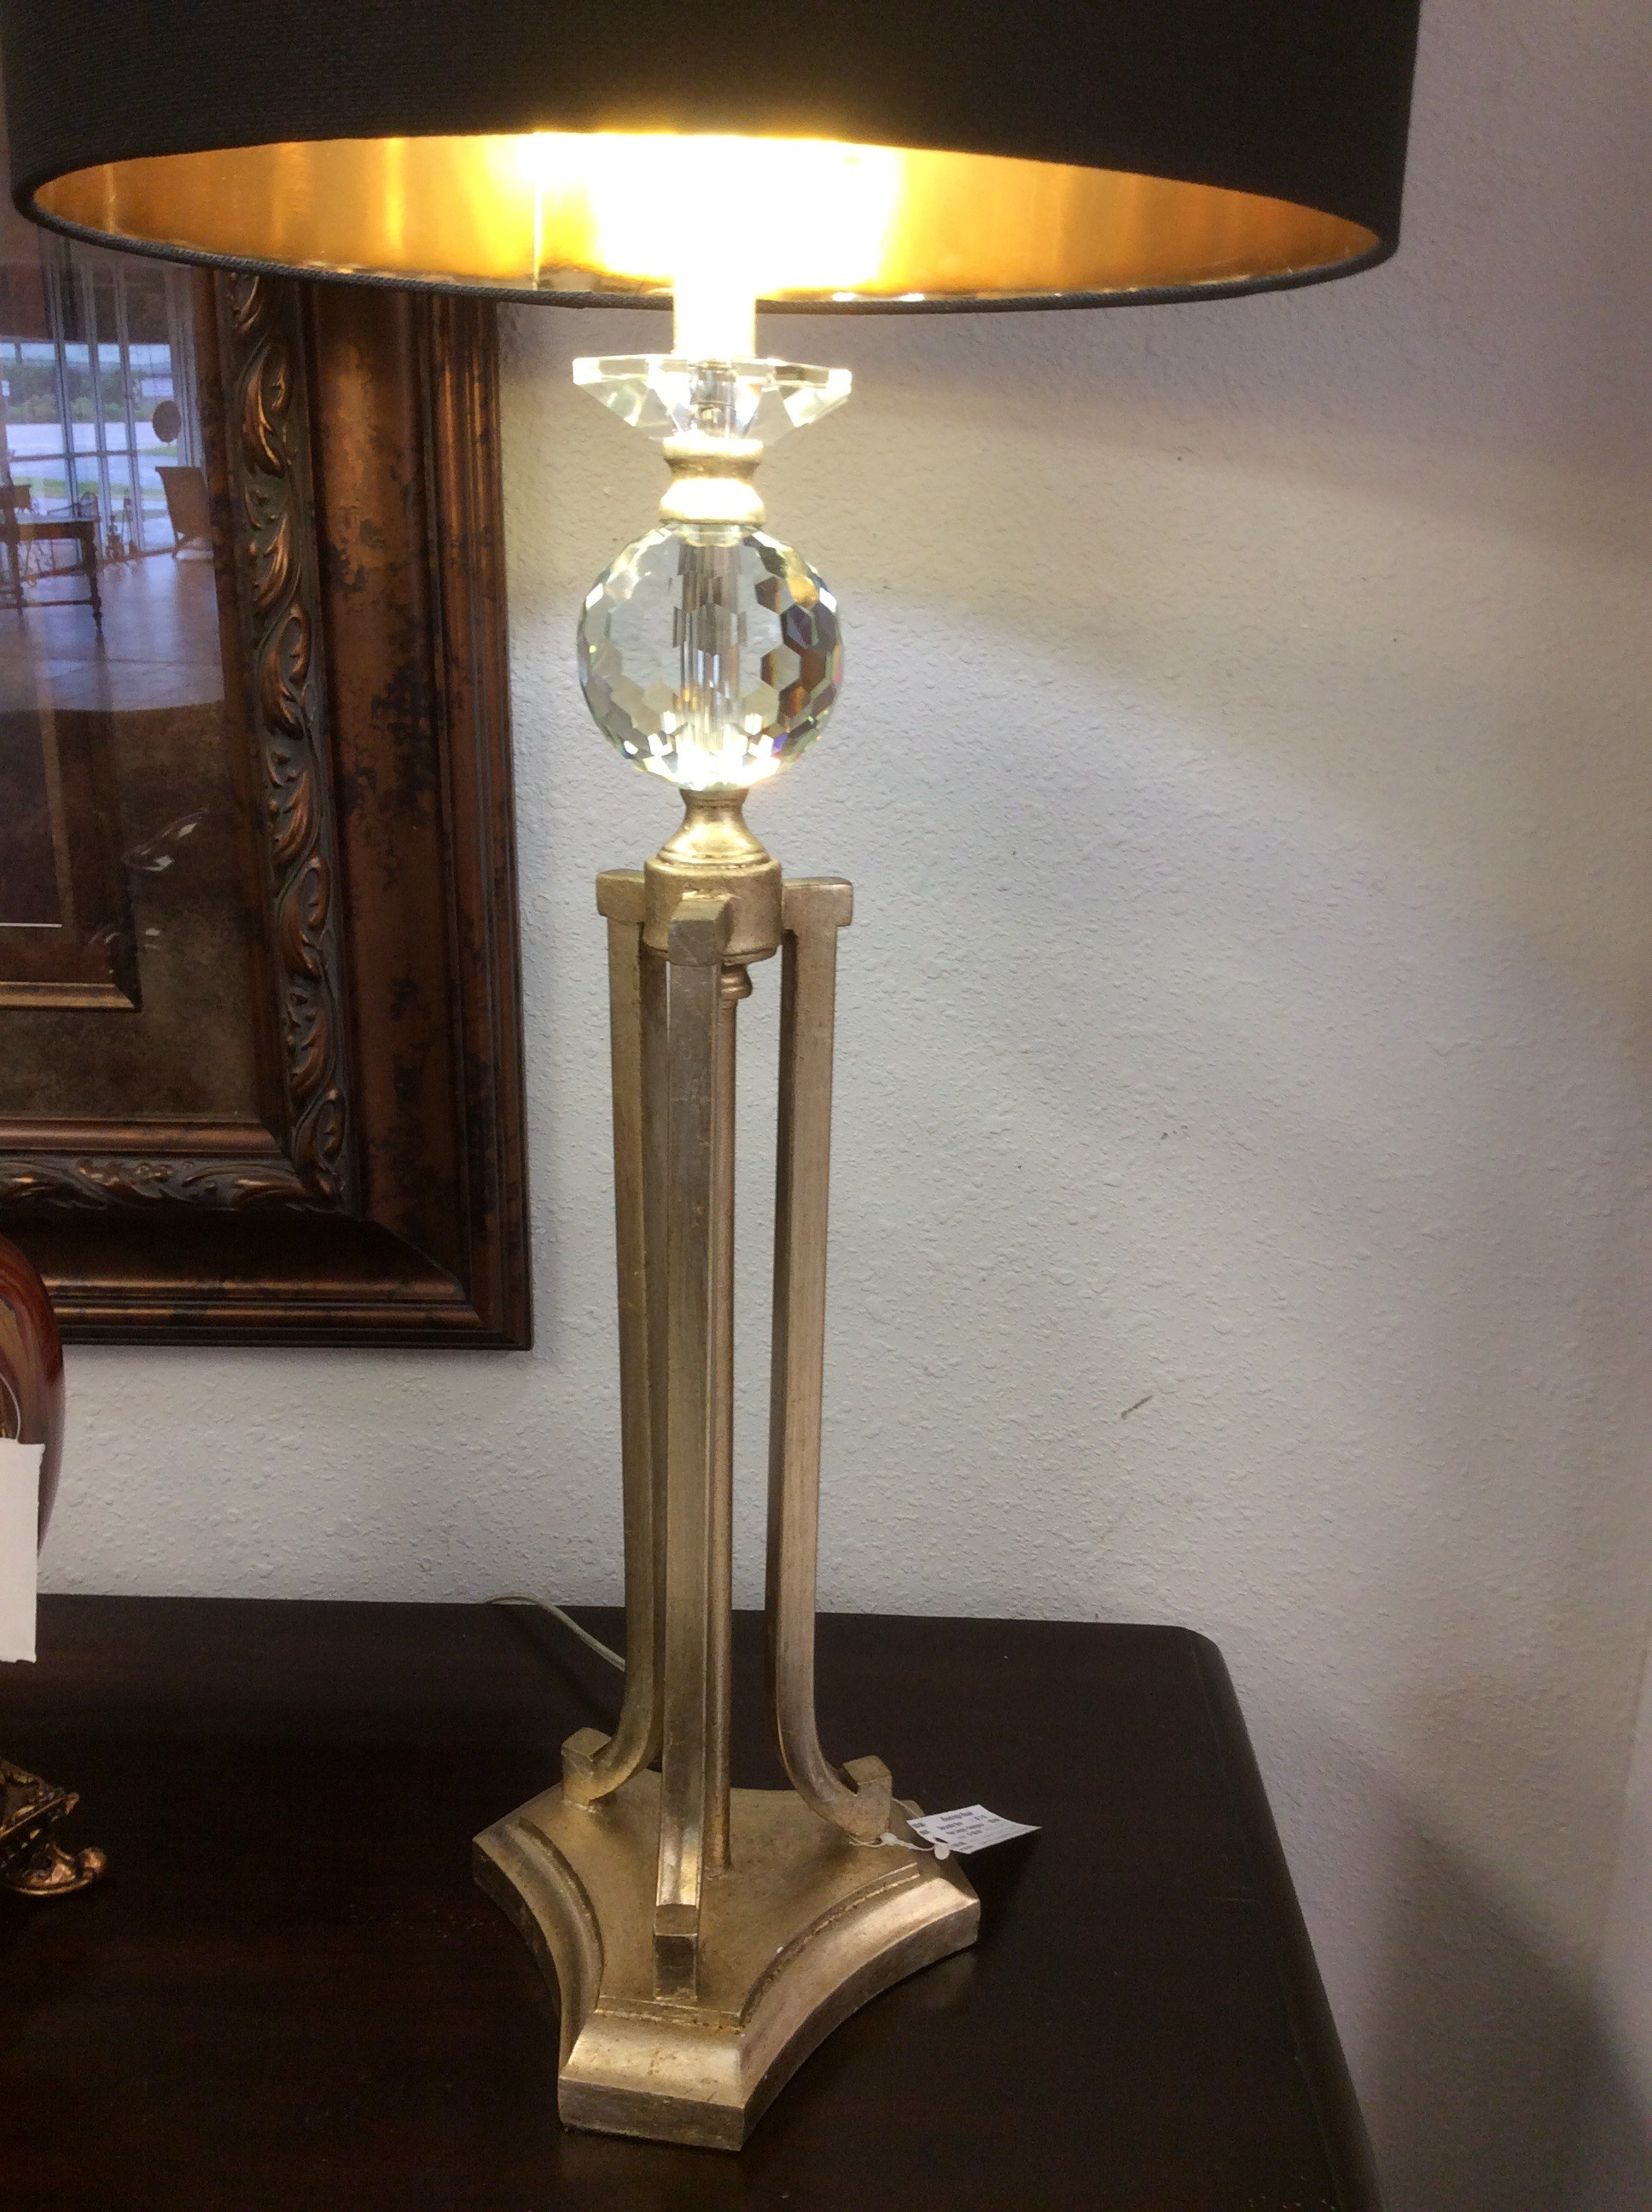 This is a beautiful pair of lamps!